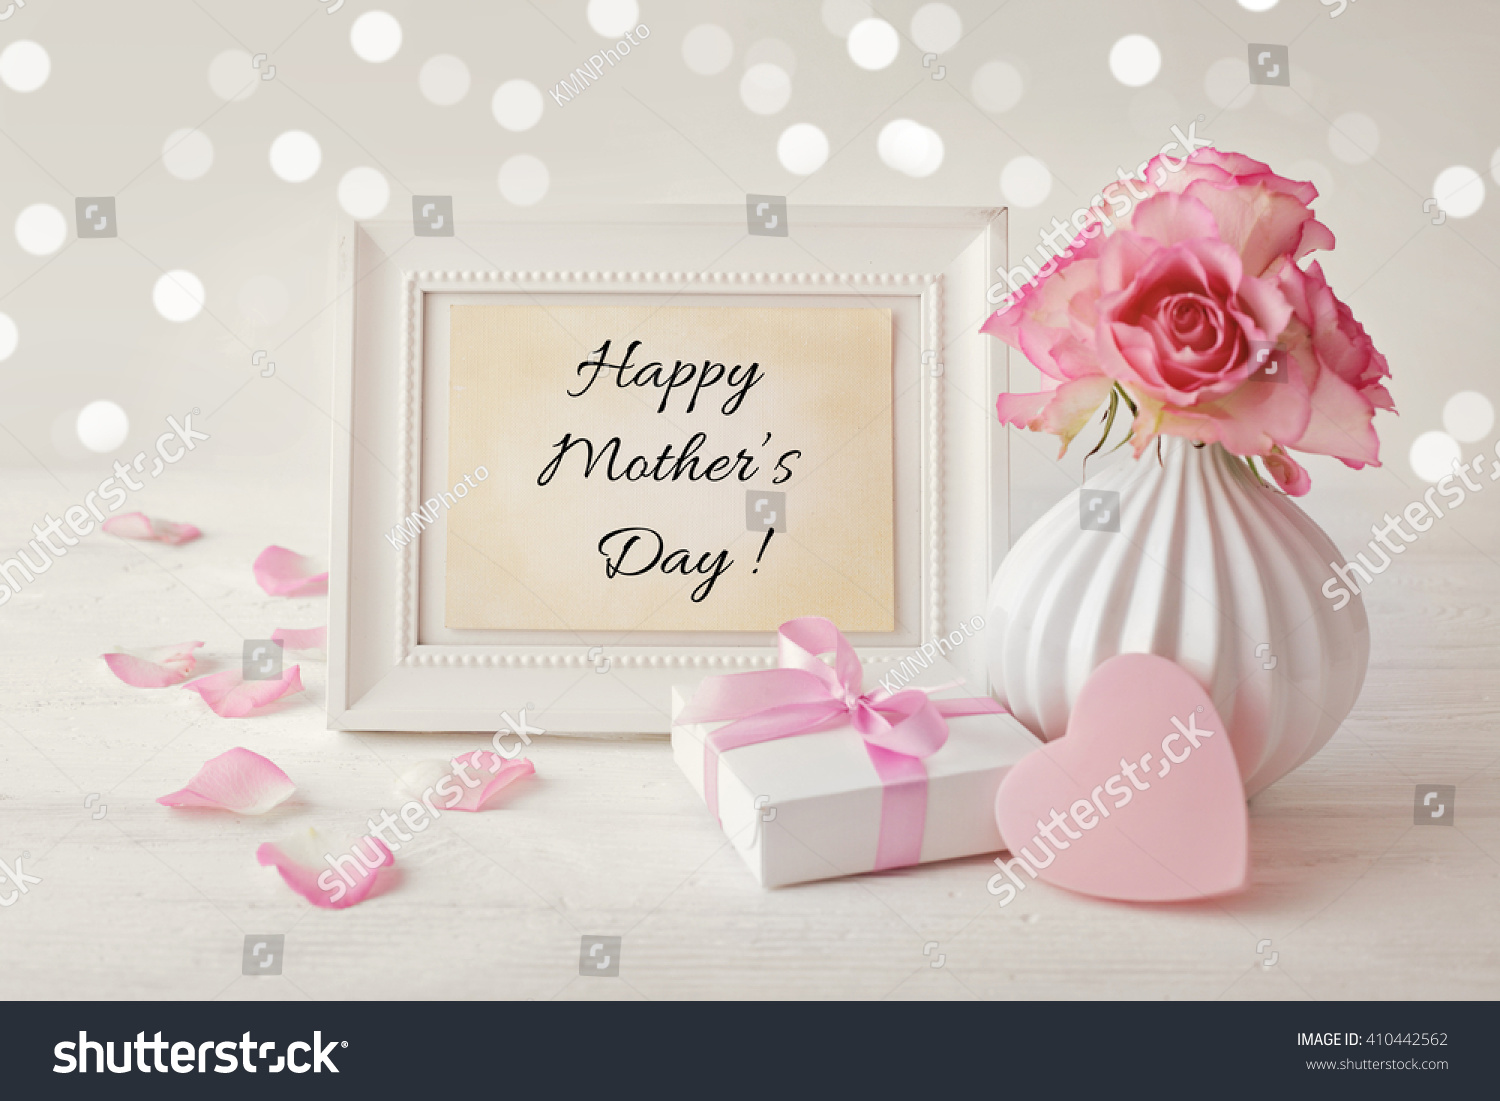 Happy Mothers Day Frame Background Stock Photo & Image (Royalty-Free ...